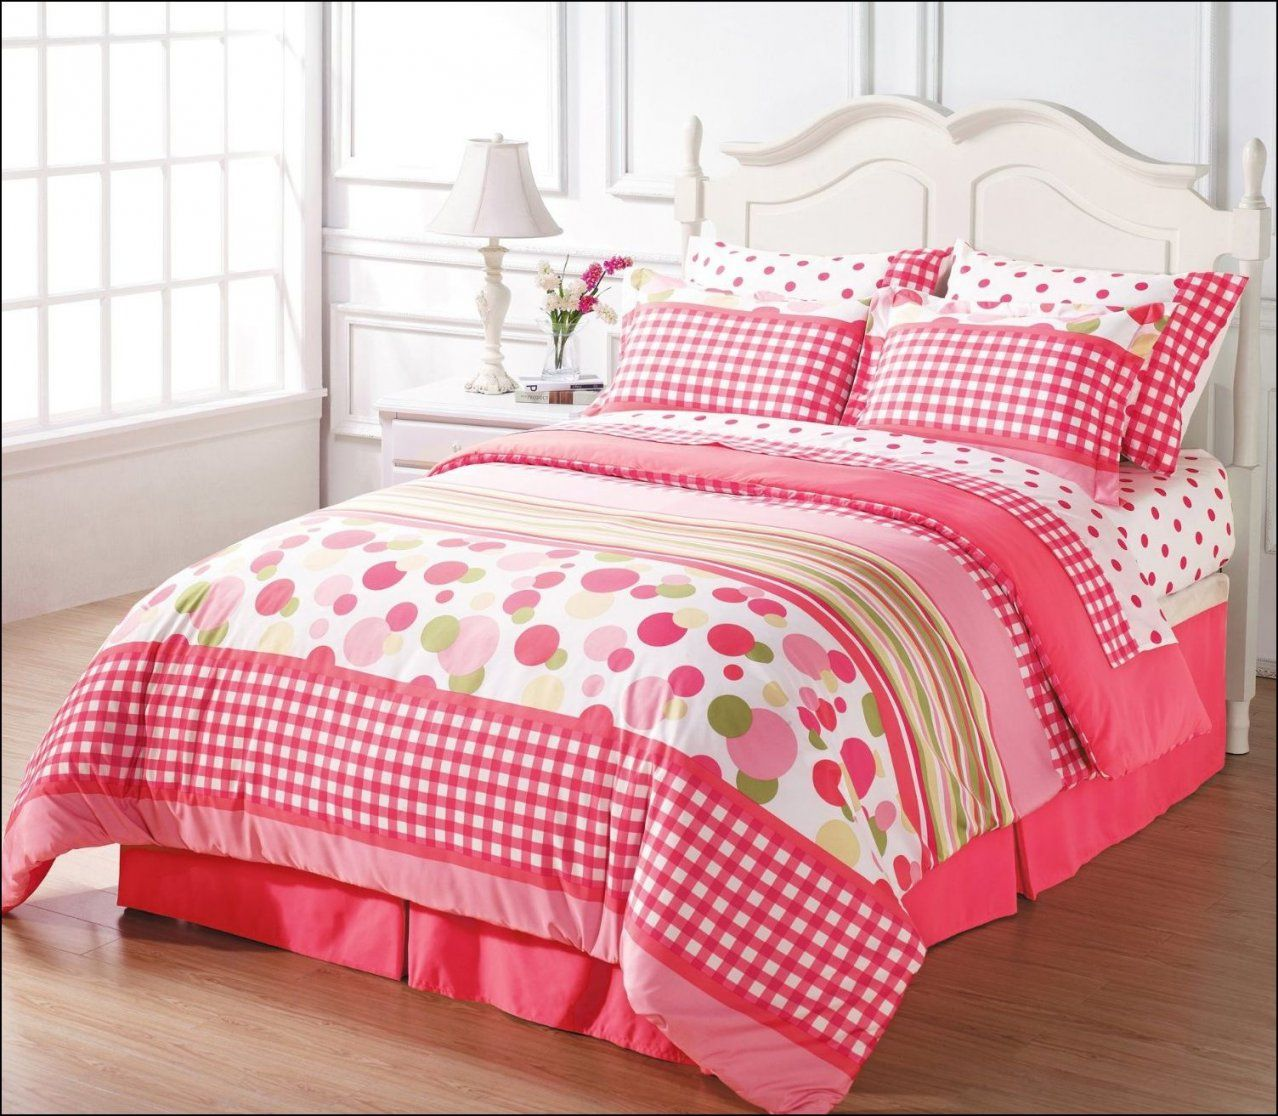 Bed Sheet 18  Snzglobal von Polka Dotted Bed Sheets Photo